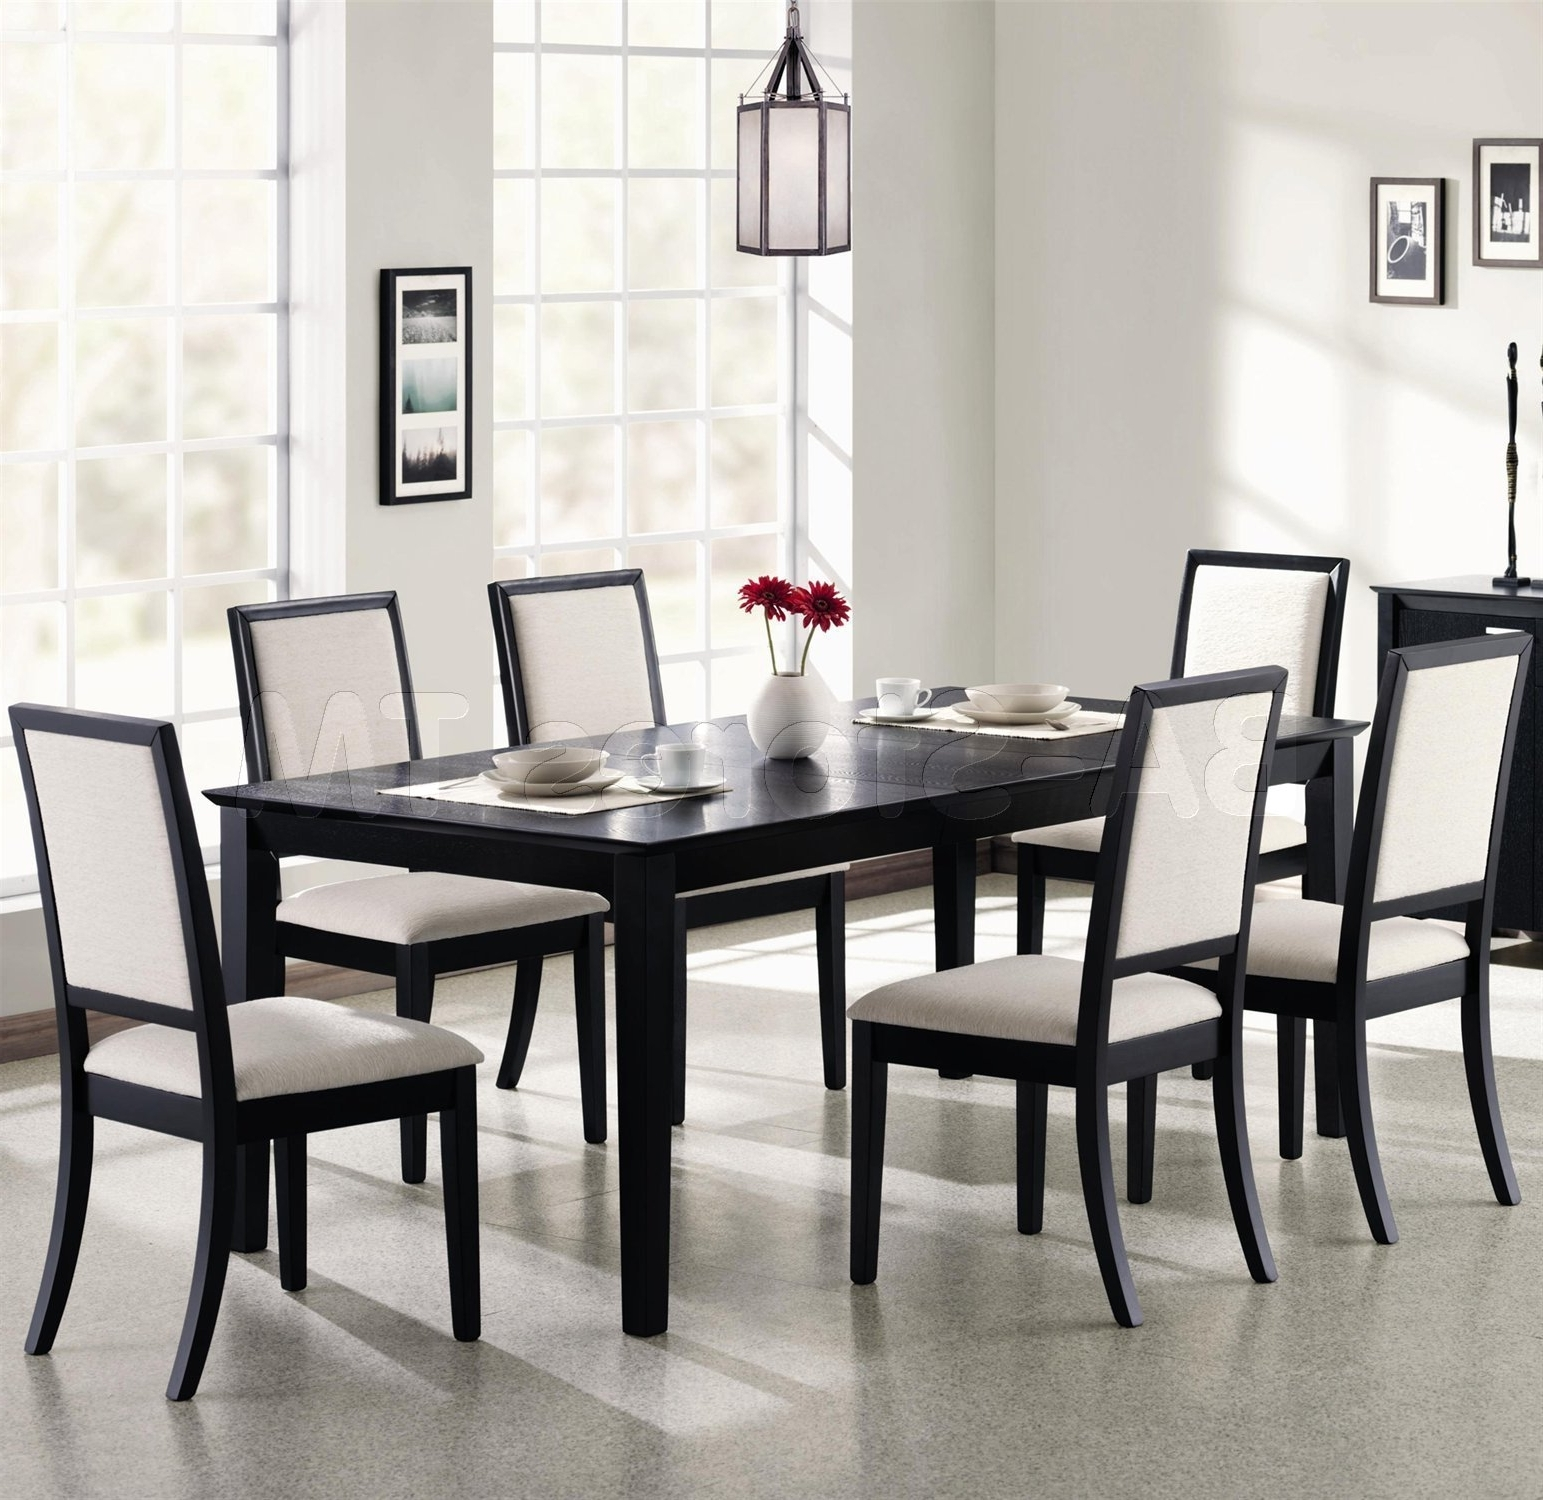 Caira Black Round Dining Tables With Regard To Latest Furniture (View 13 of 25)